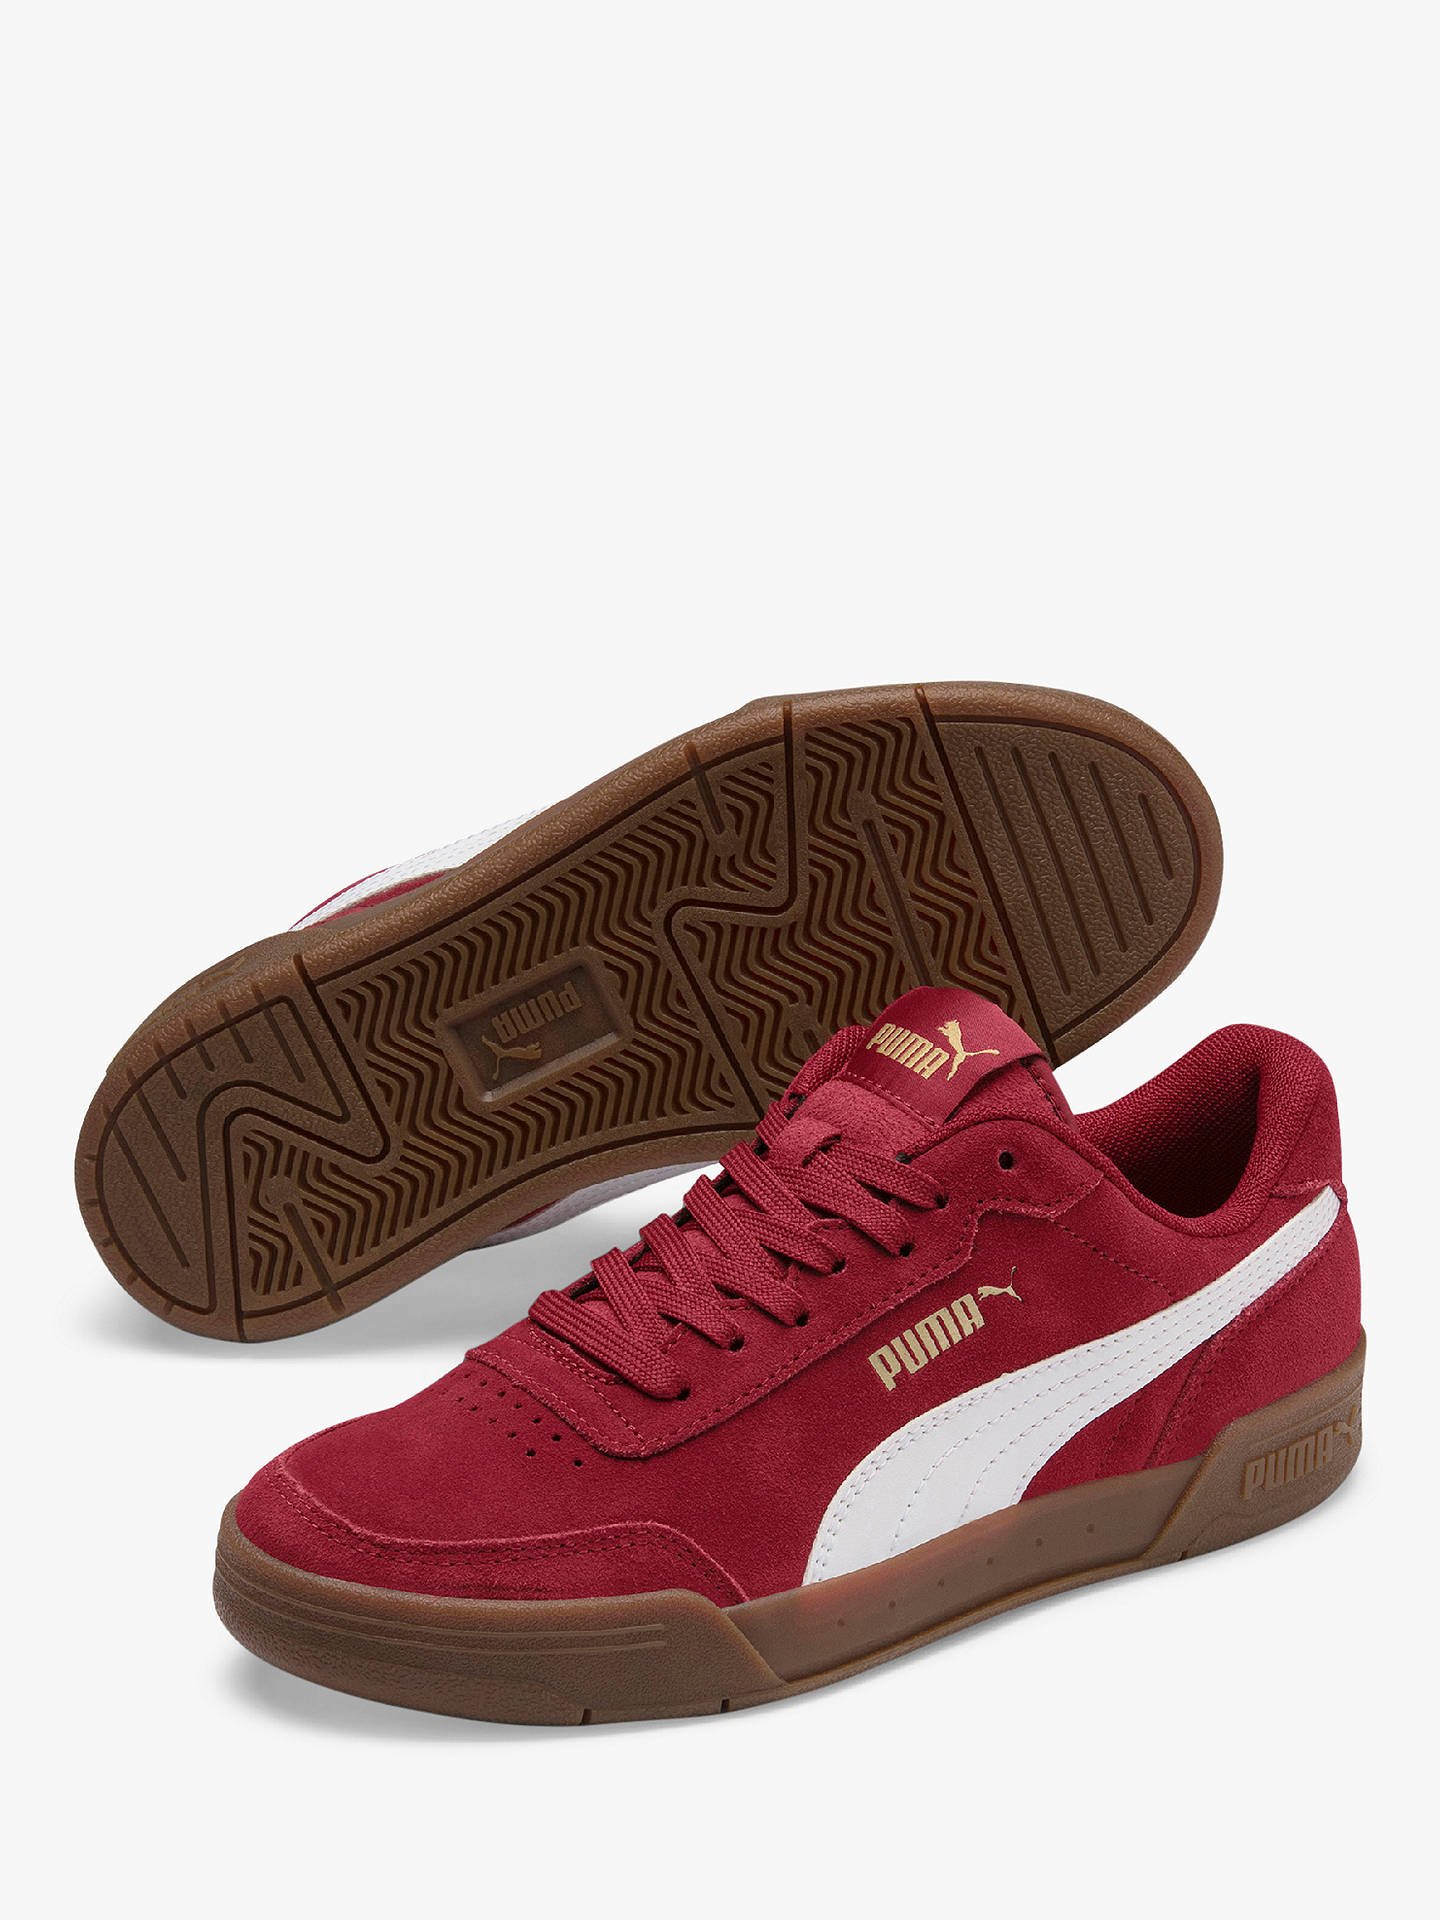 PUMA Children's Caracal Trainers, Burgundy Suede at John ...